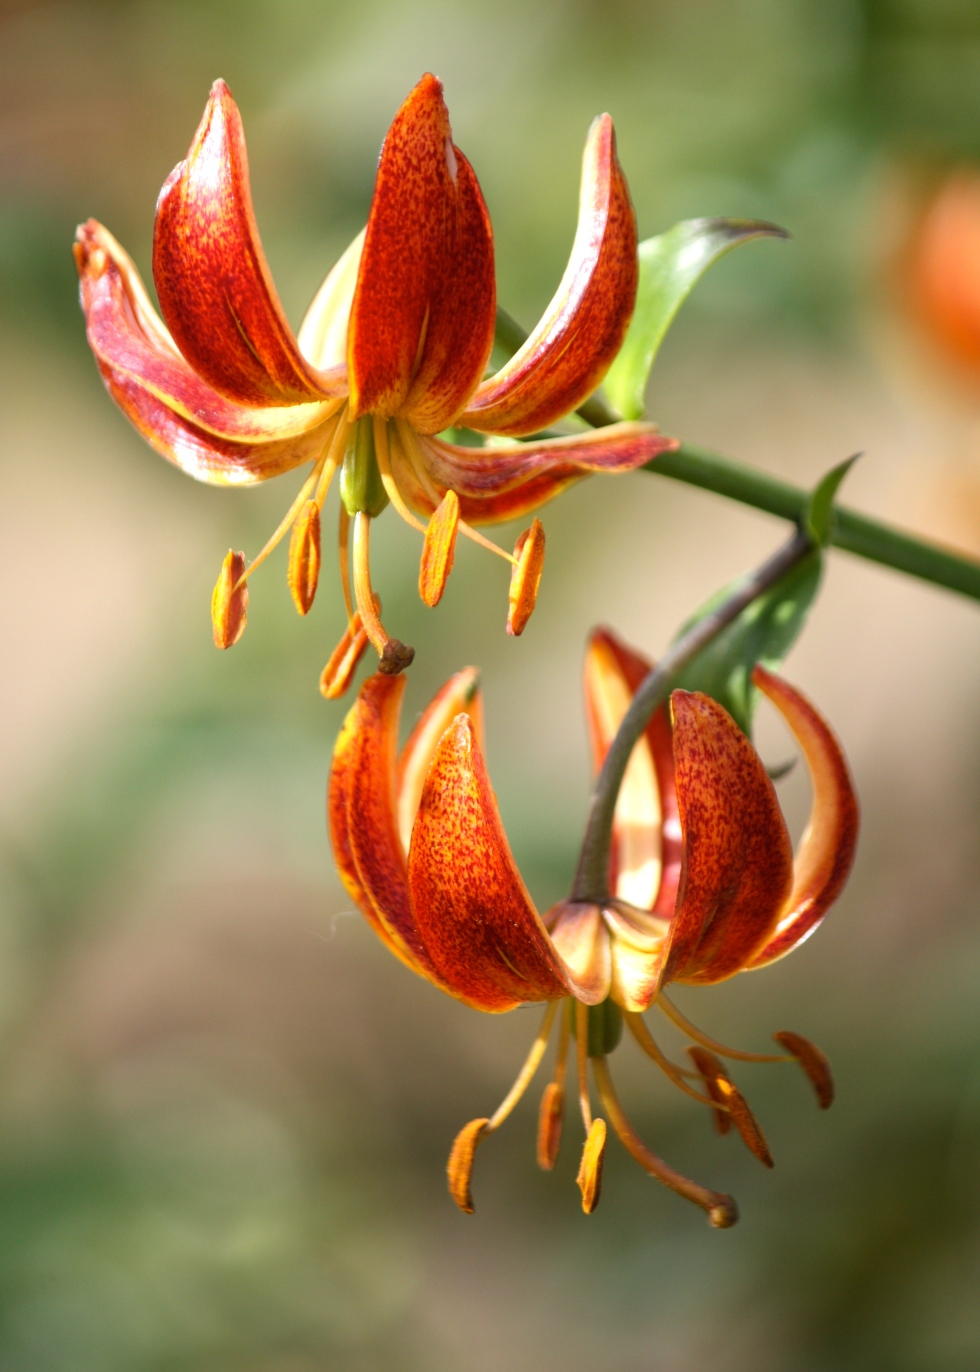 Turks cap lilies in all shades of orange populated shady parts of the garden